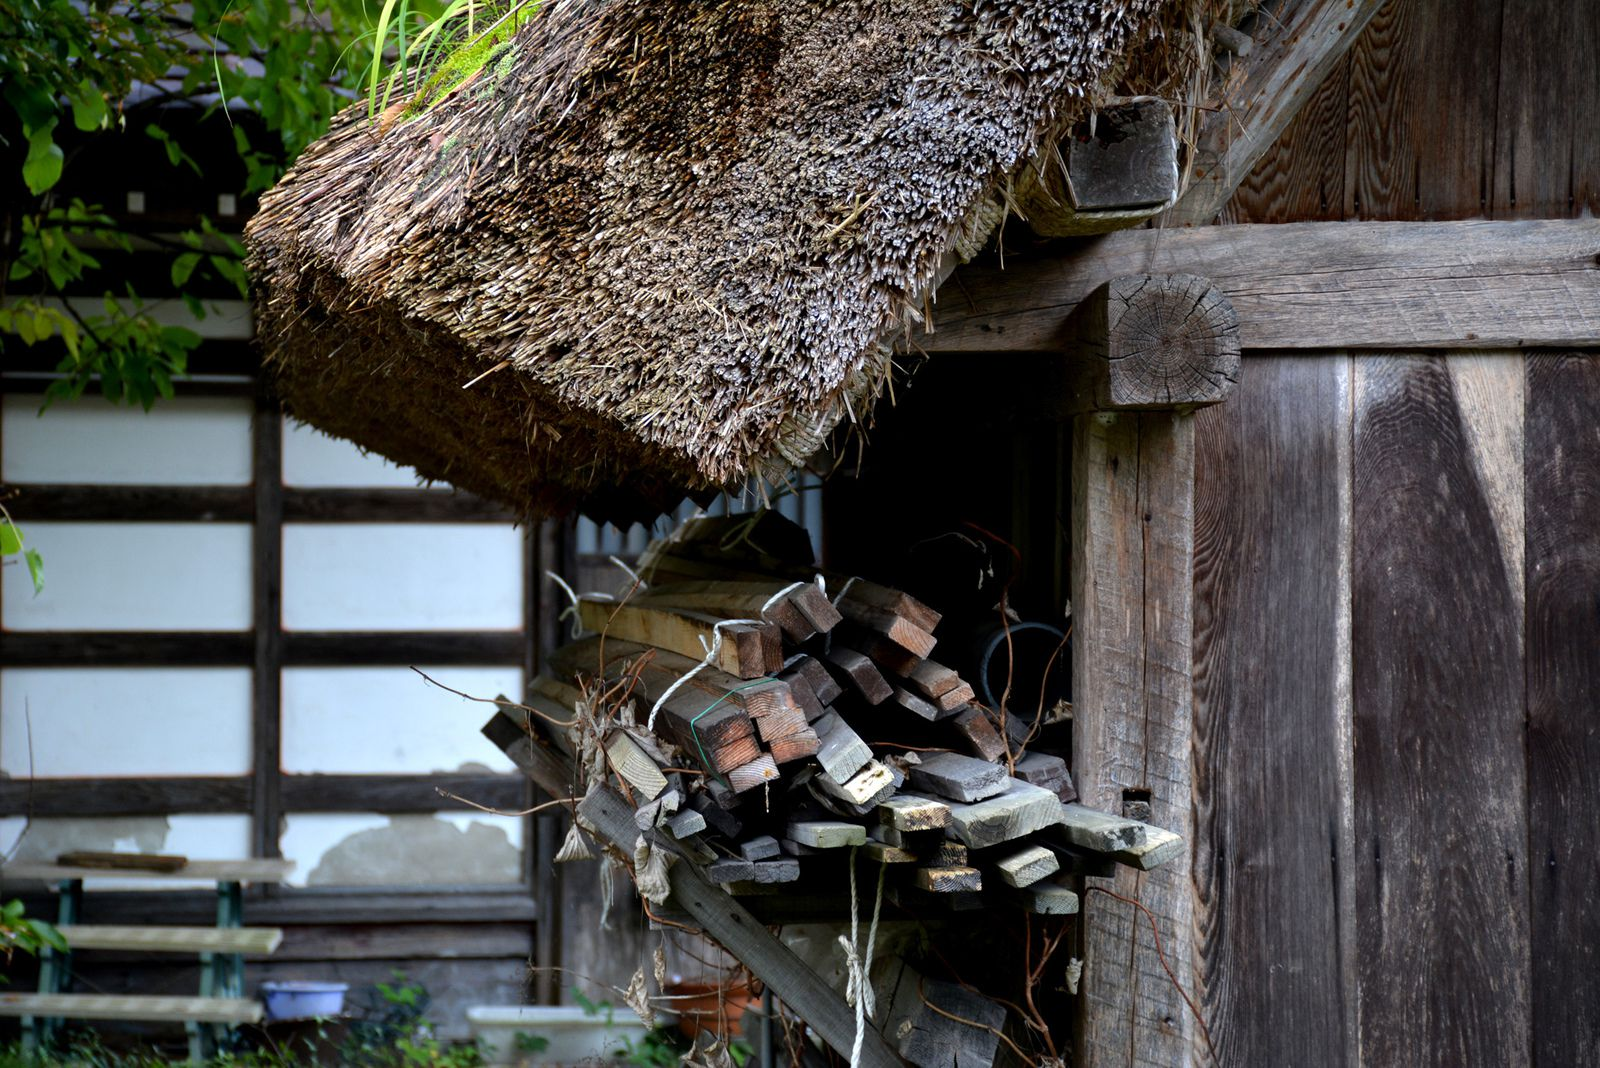 Shirakawa-gō - Photos: Lankaart (c)